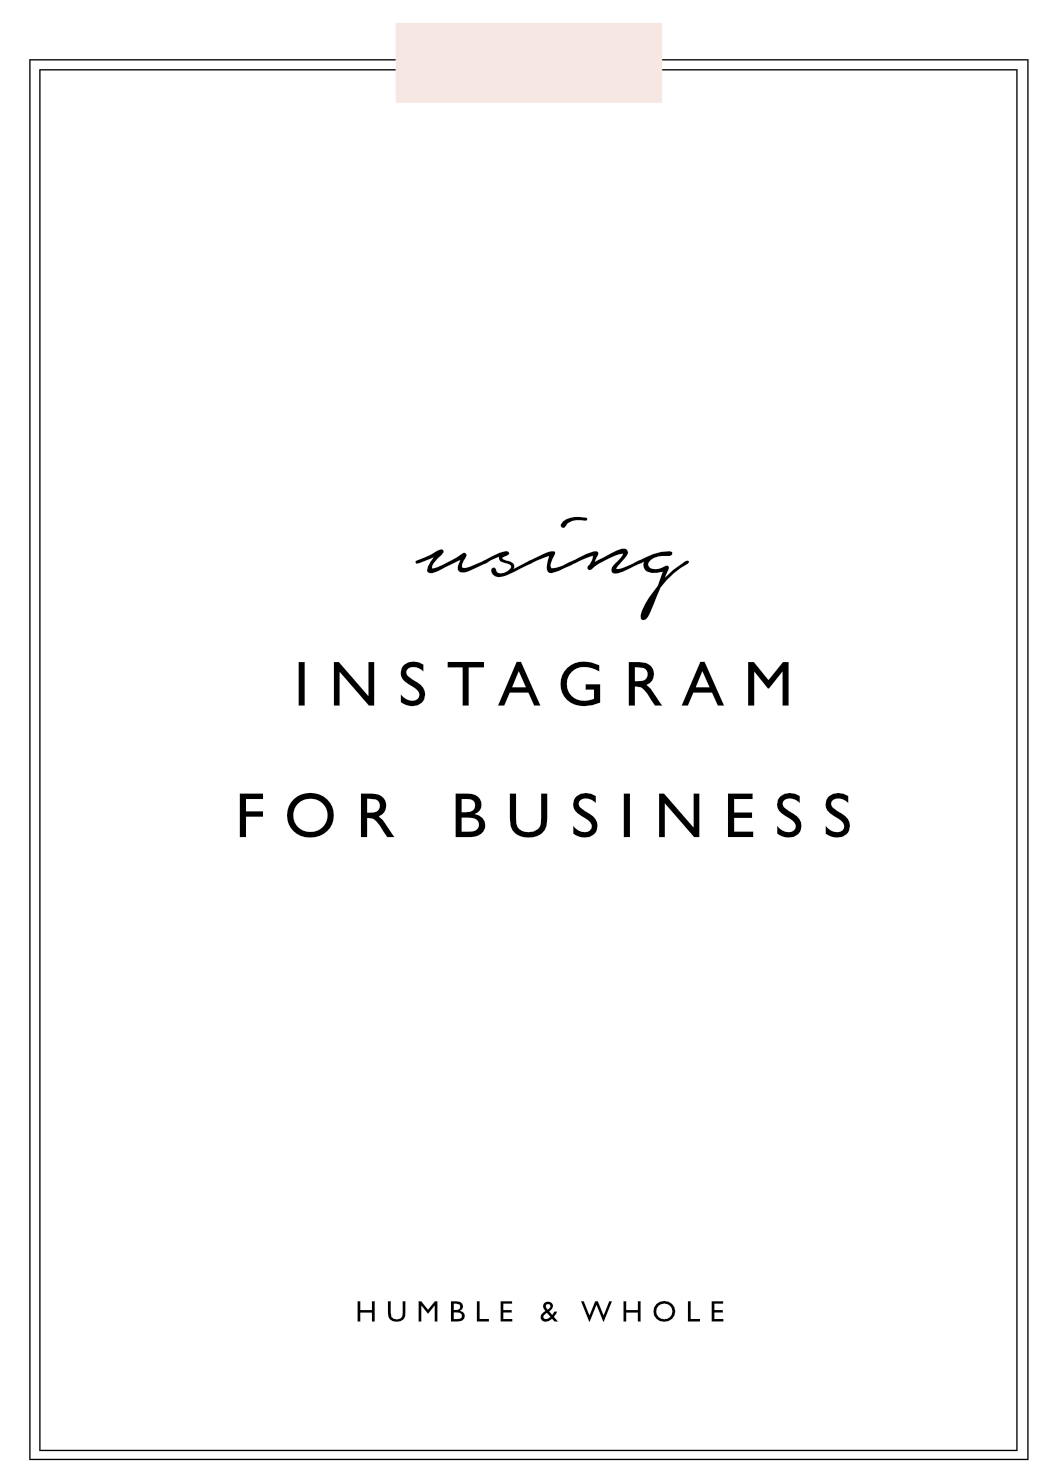 With over 500 million monthly users, Instagram is great for business. In this post, we describe how to use Instagram for business to generate the best results. If you need some tips for how to use Instagram for business, click through to check out our favorite strategies.